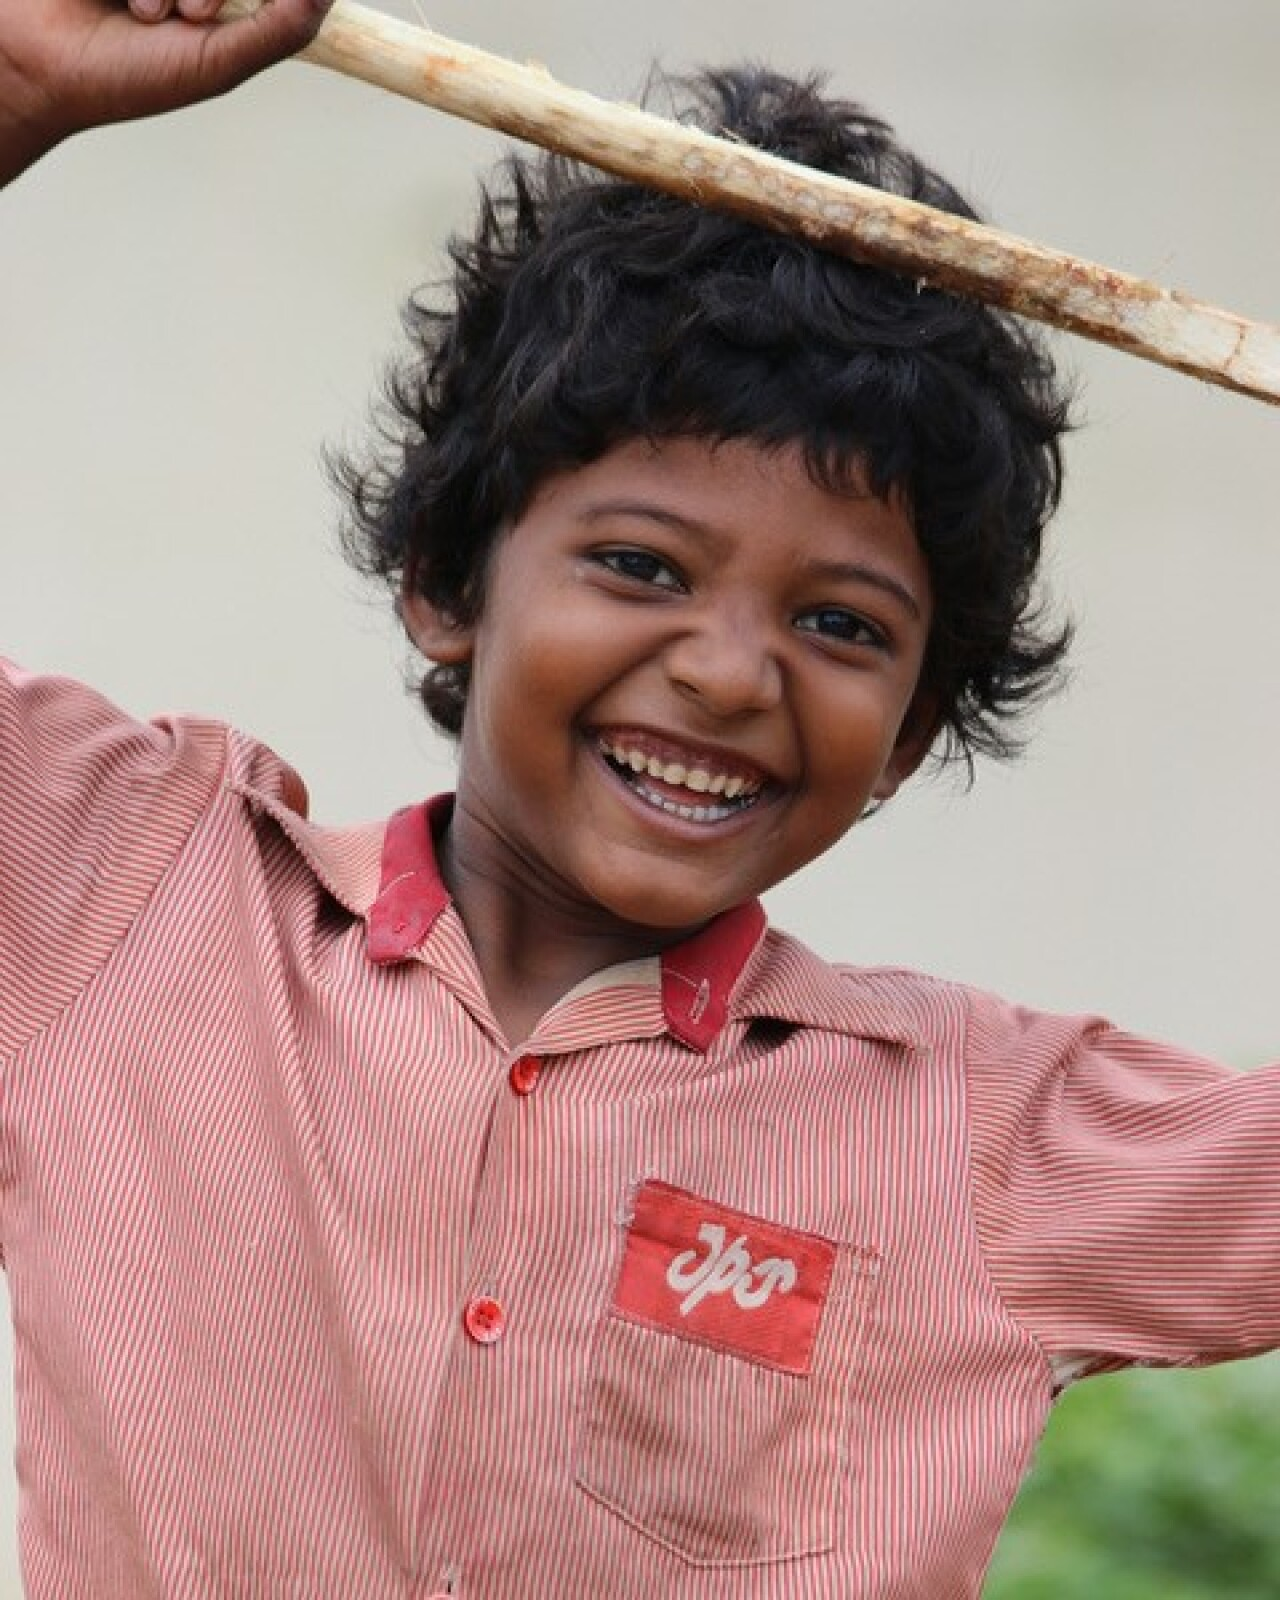 A young child looking at the cameraman and smiling. He is holing a stick above his head and he is wearing a white and red pinstriped button up shirt.